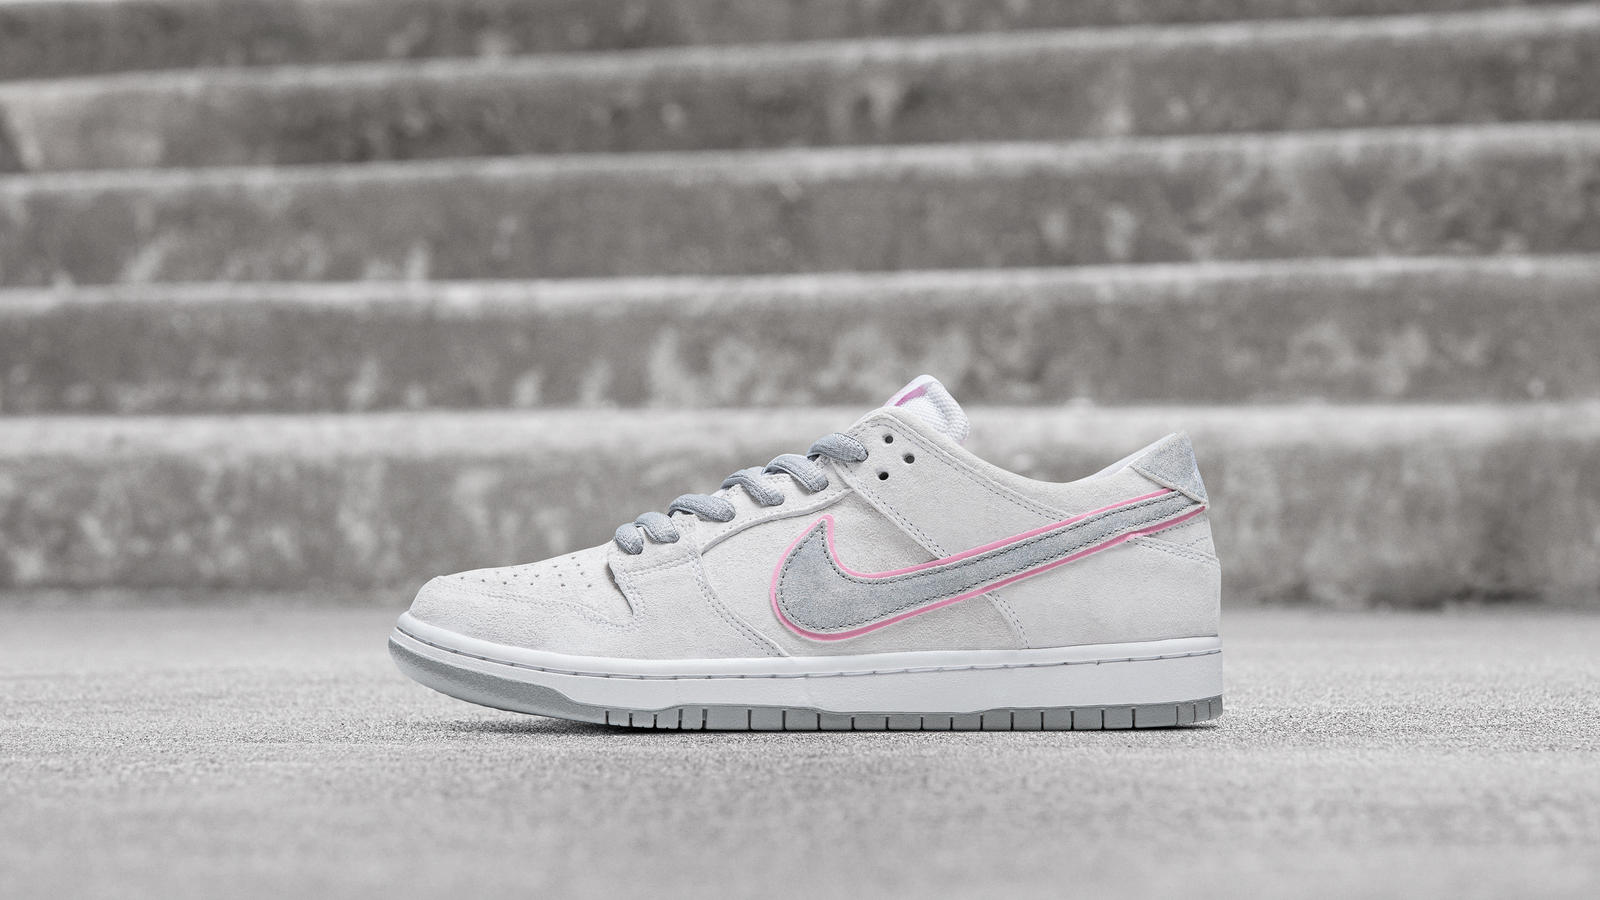 best sneakers 39f8f a73b8 Nike SB Dunk Low Pro 'Ishod Wair' - Nike News